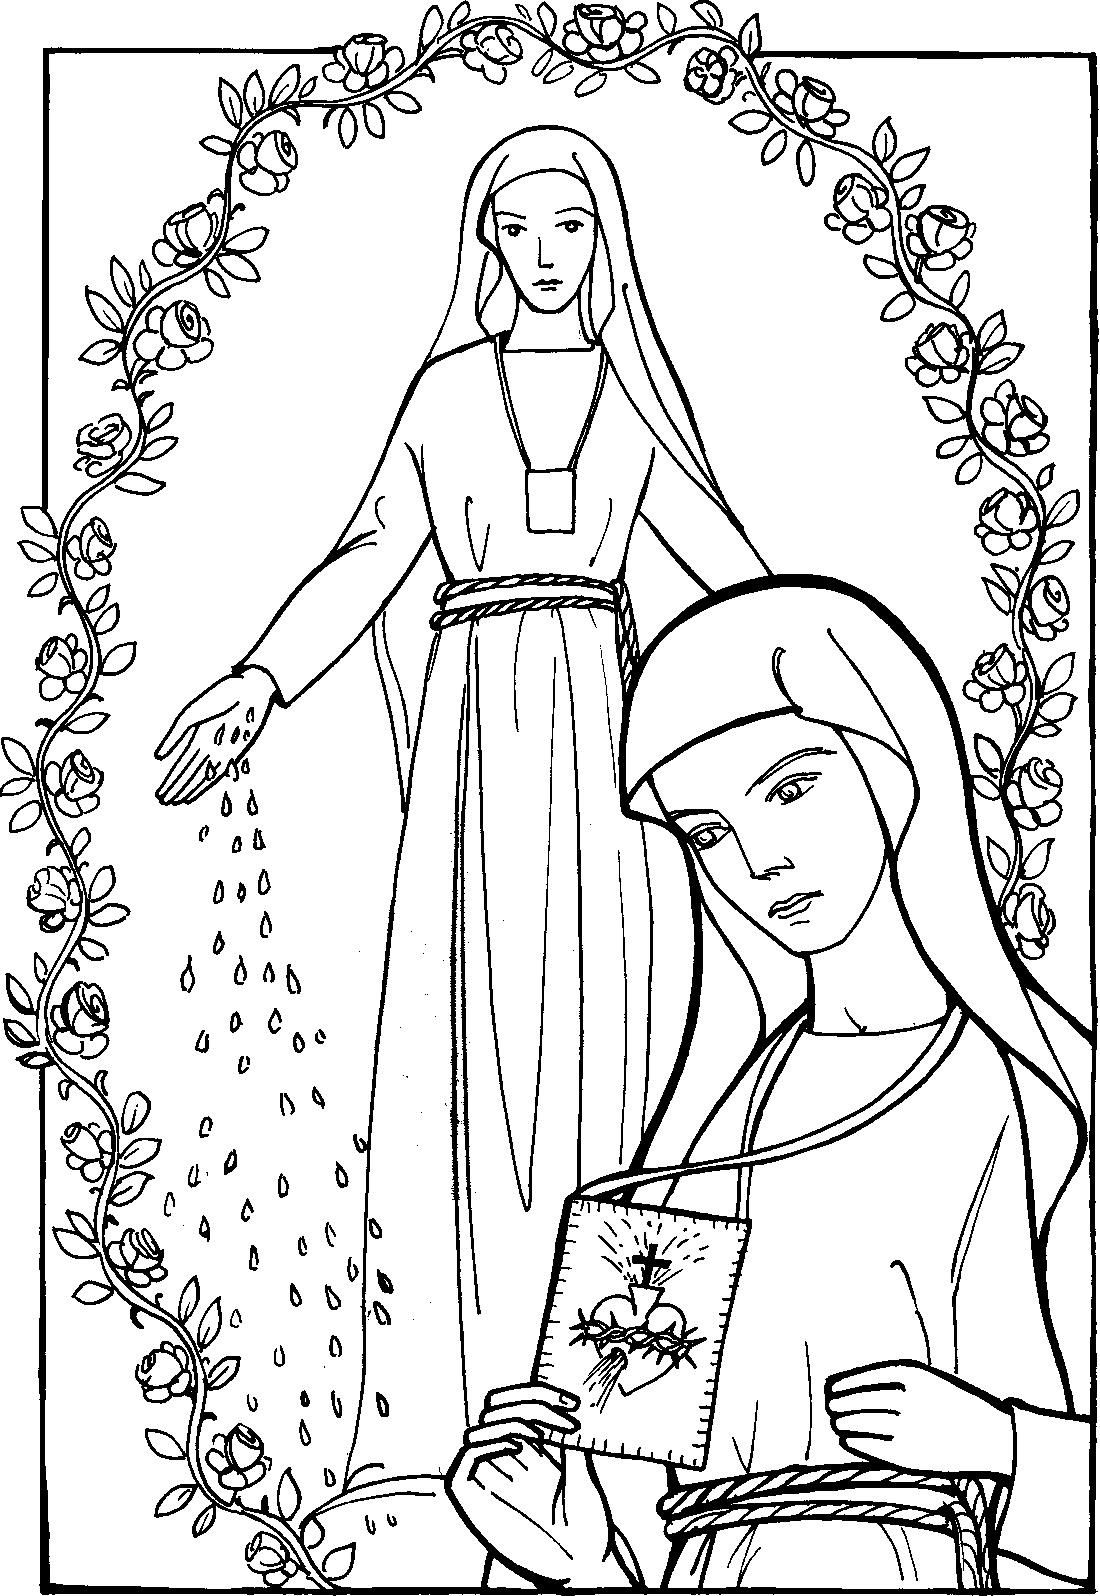 Pin coloriage marie mai on pinterest - Coloriage marie ...